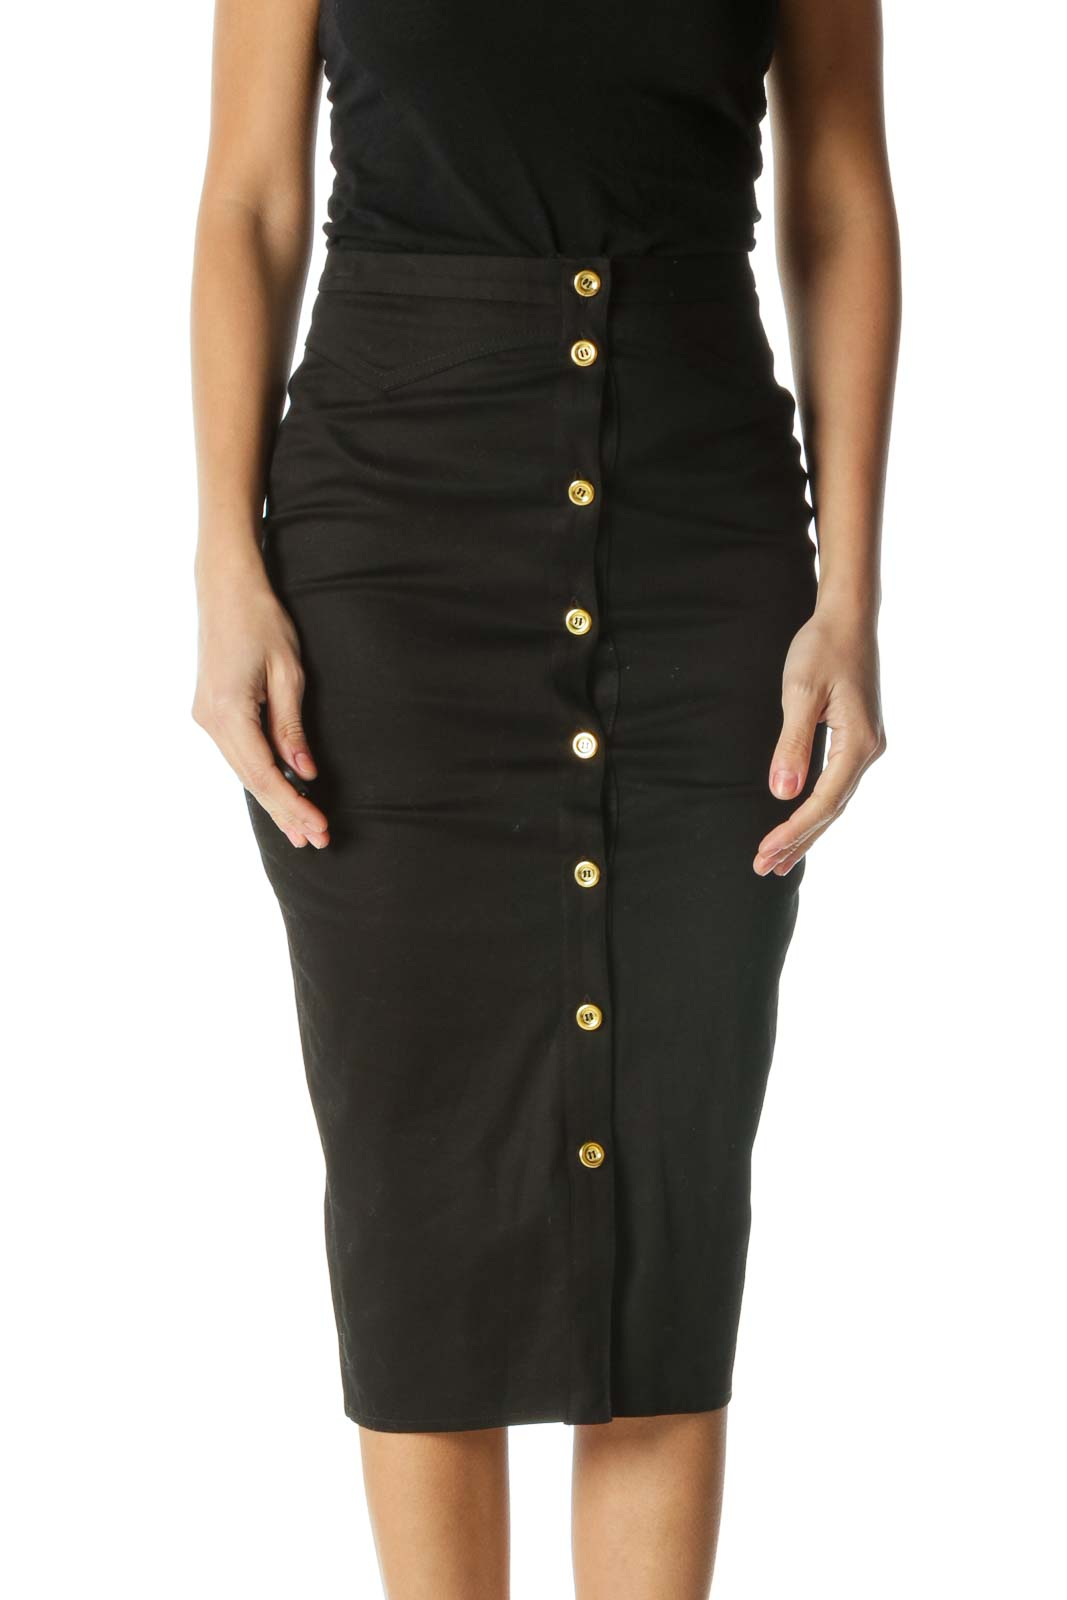 Black Pencil Skirt with Gold Buttons